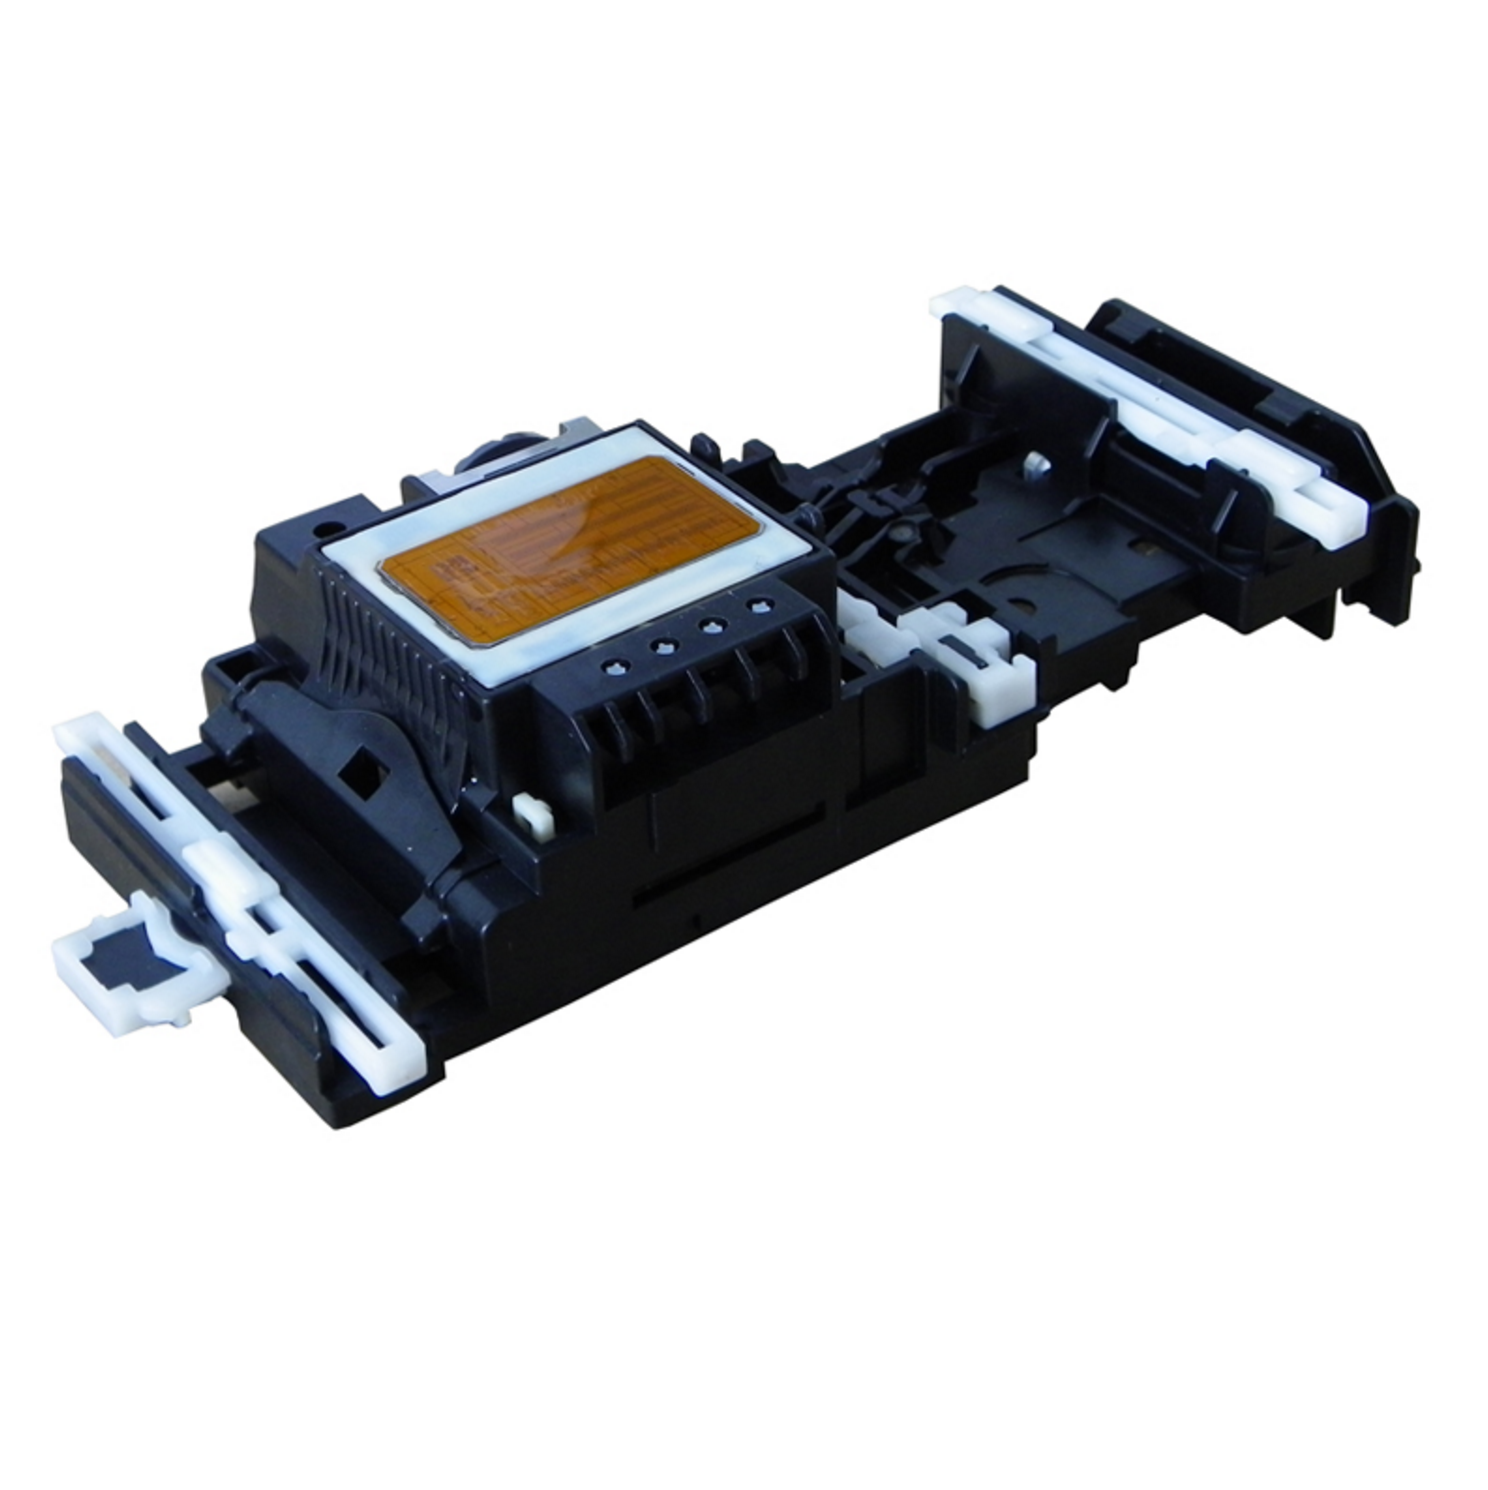 Original Brand New Print Head for Brother DCP-<strong>J100</strong> J105 MFC-J200 J132 T700W t500W Printhead